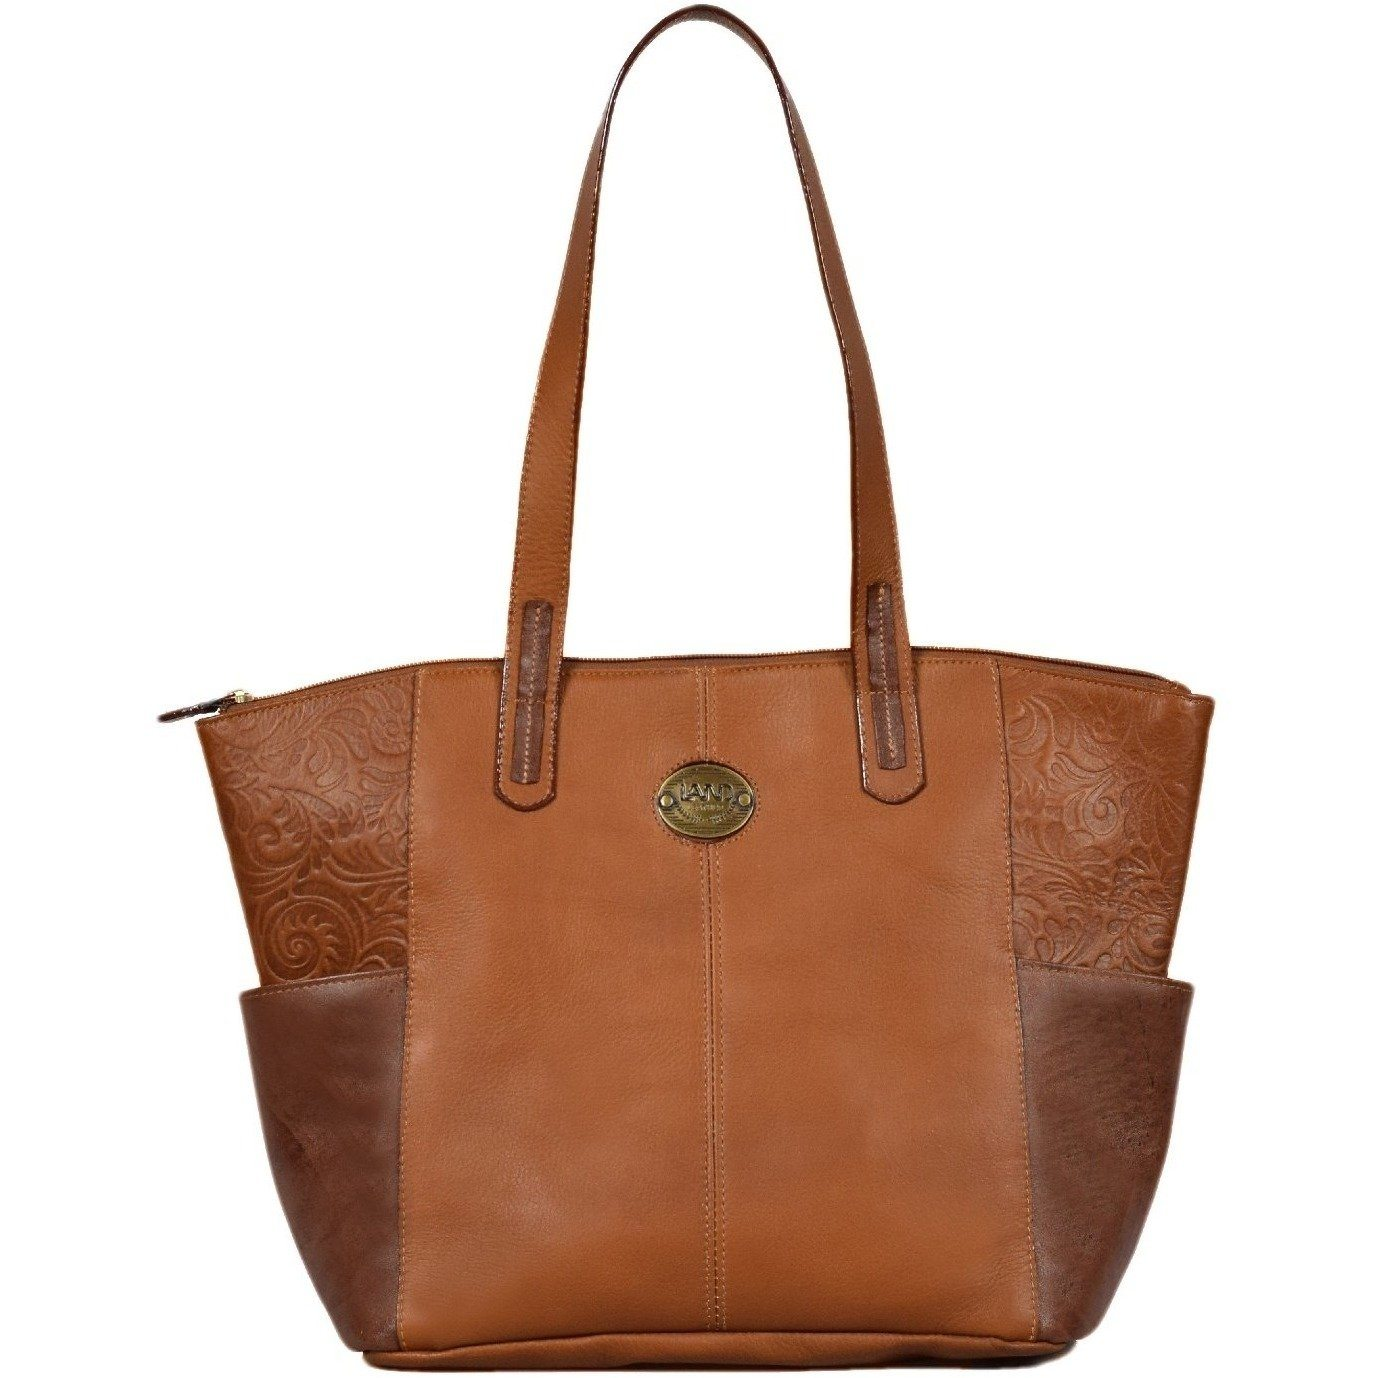 Santa Fe Tote, Handbag | LAND Leather